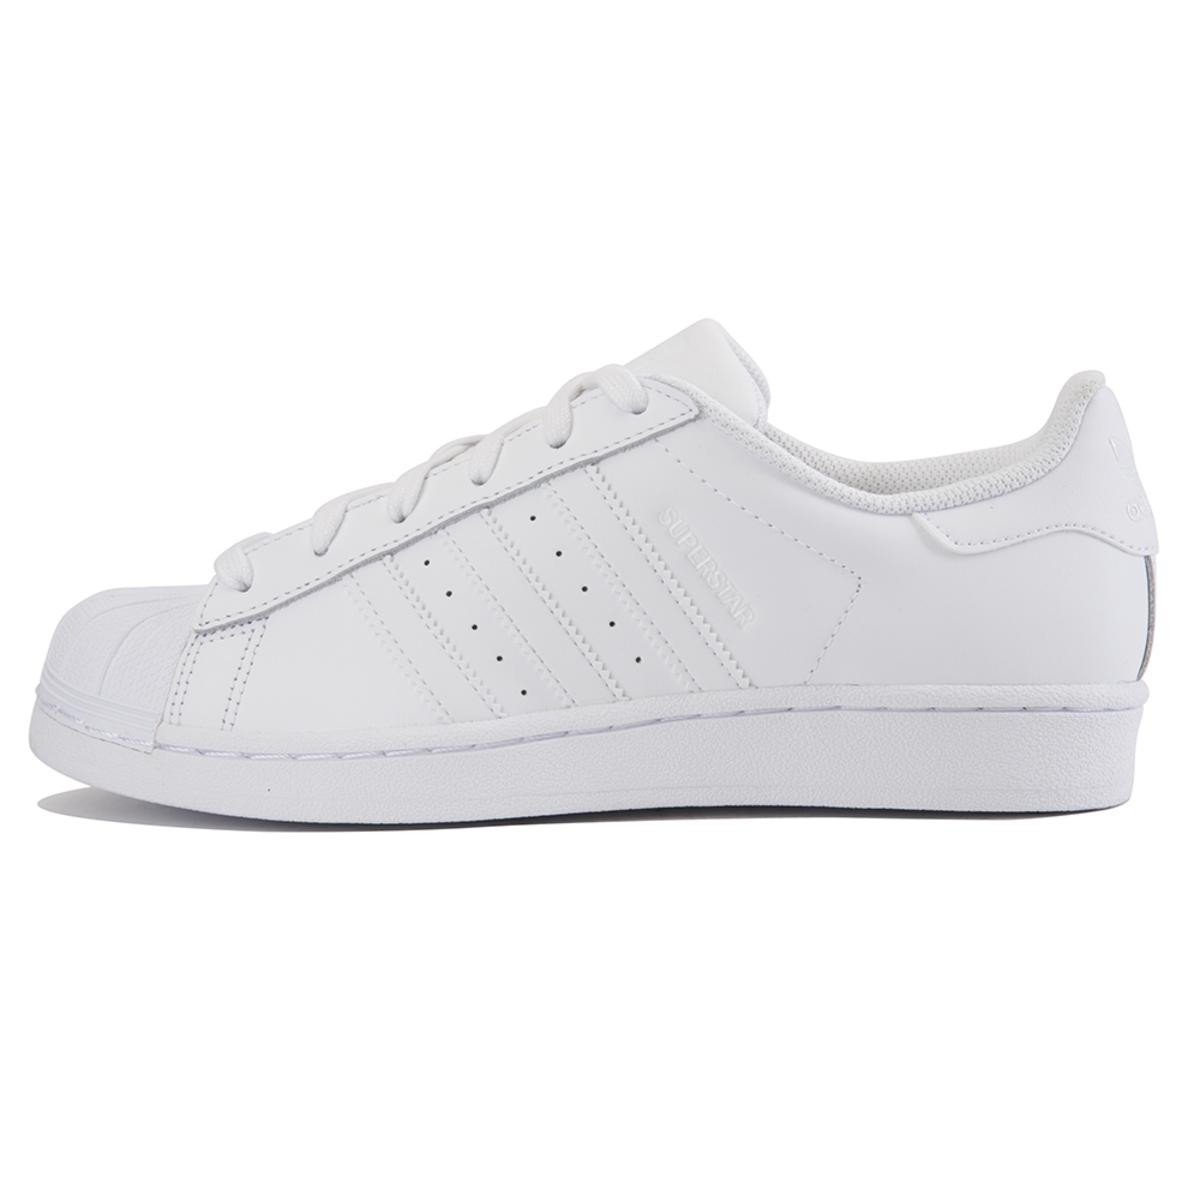 adidas for Women: Superstar All White Sneakers